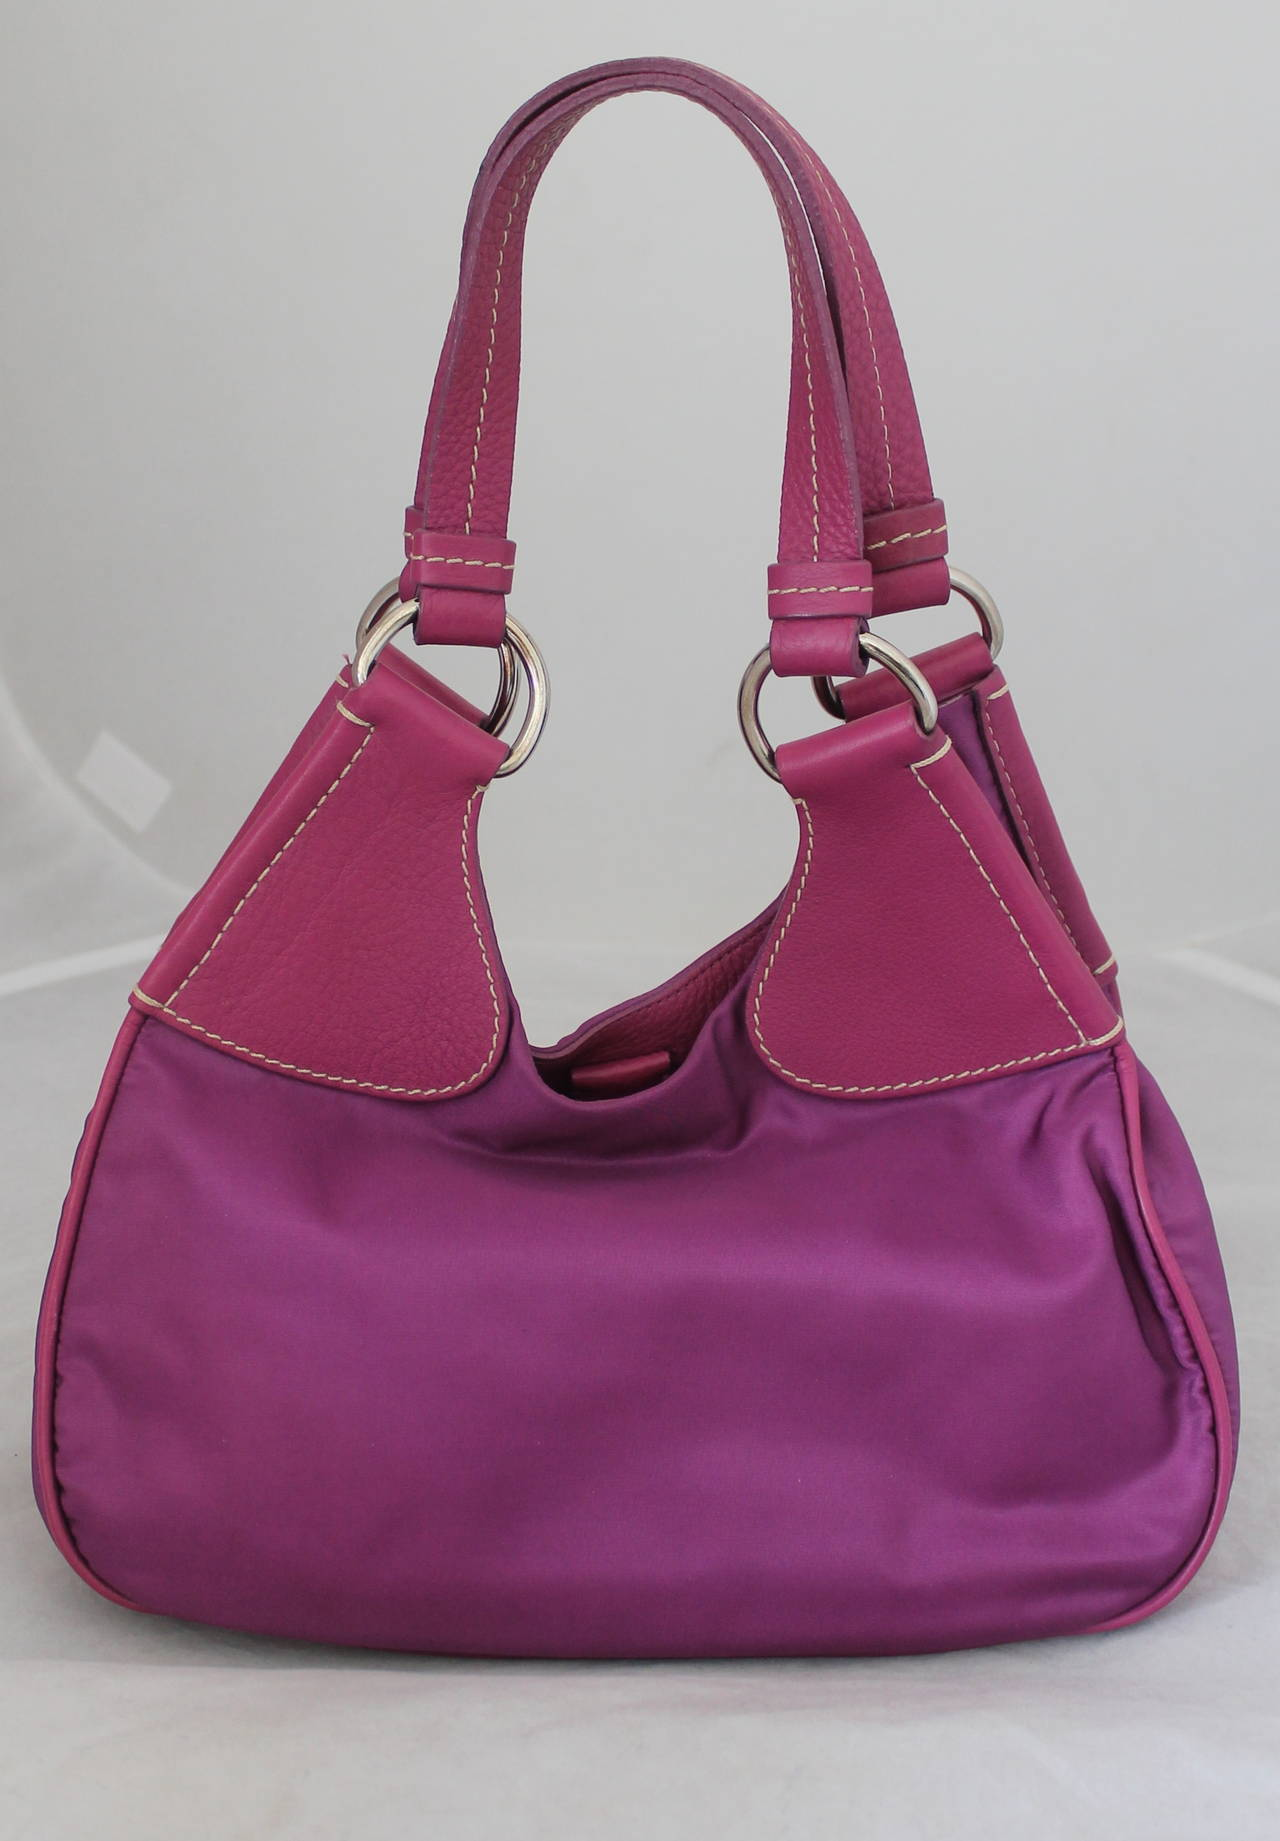 Prada Magenta Fabric & Leather Handbag 2